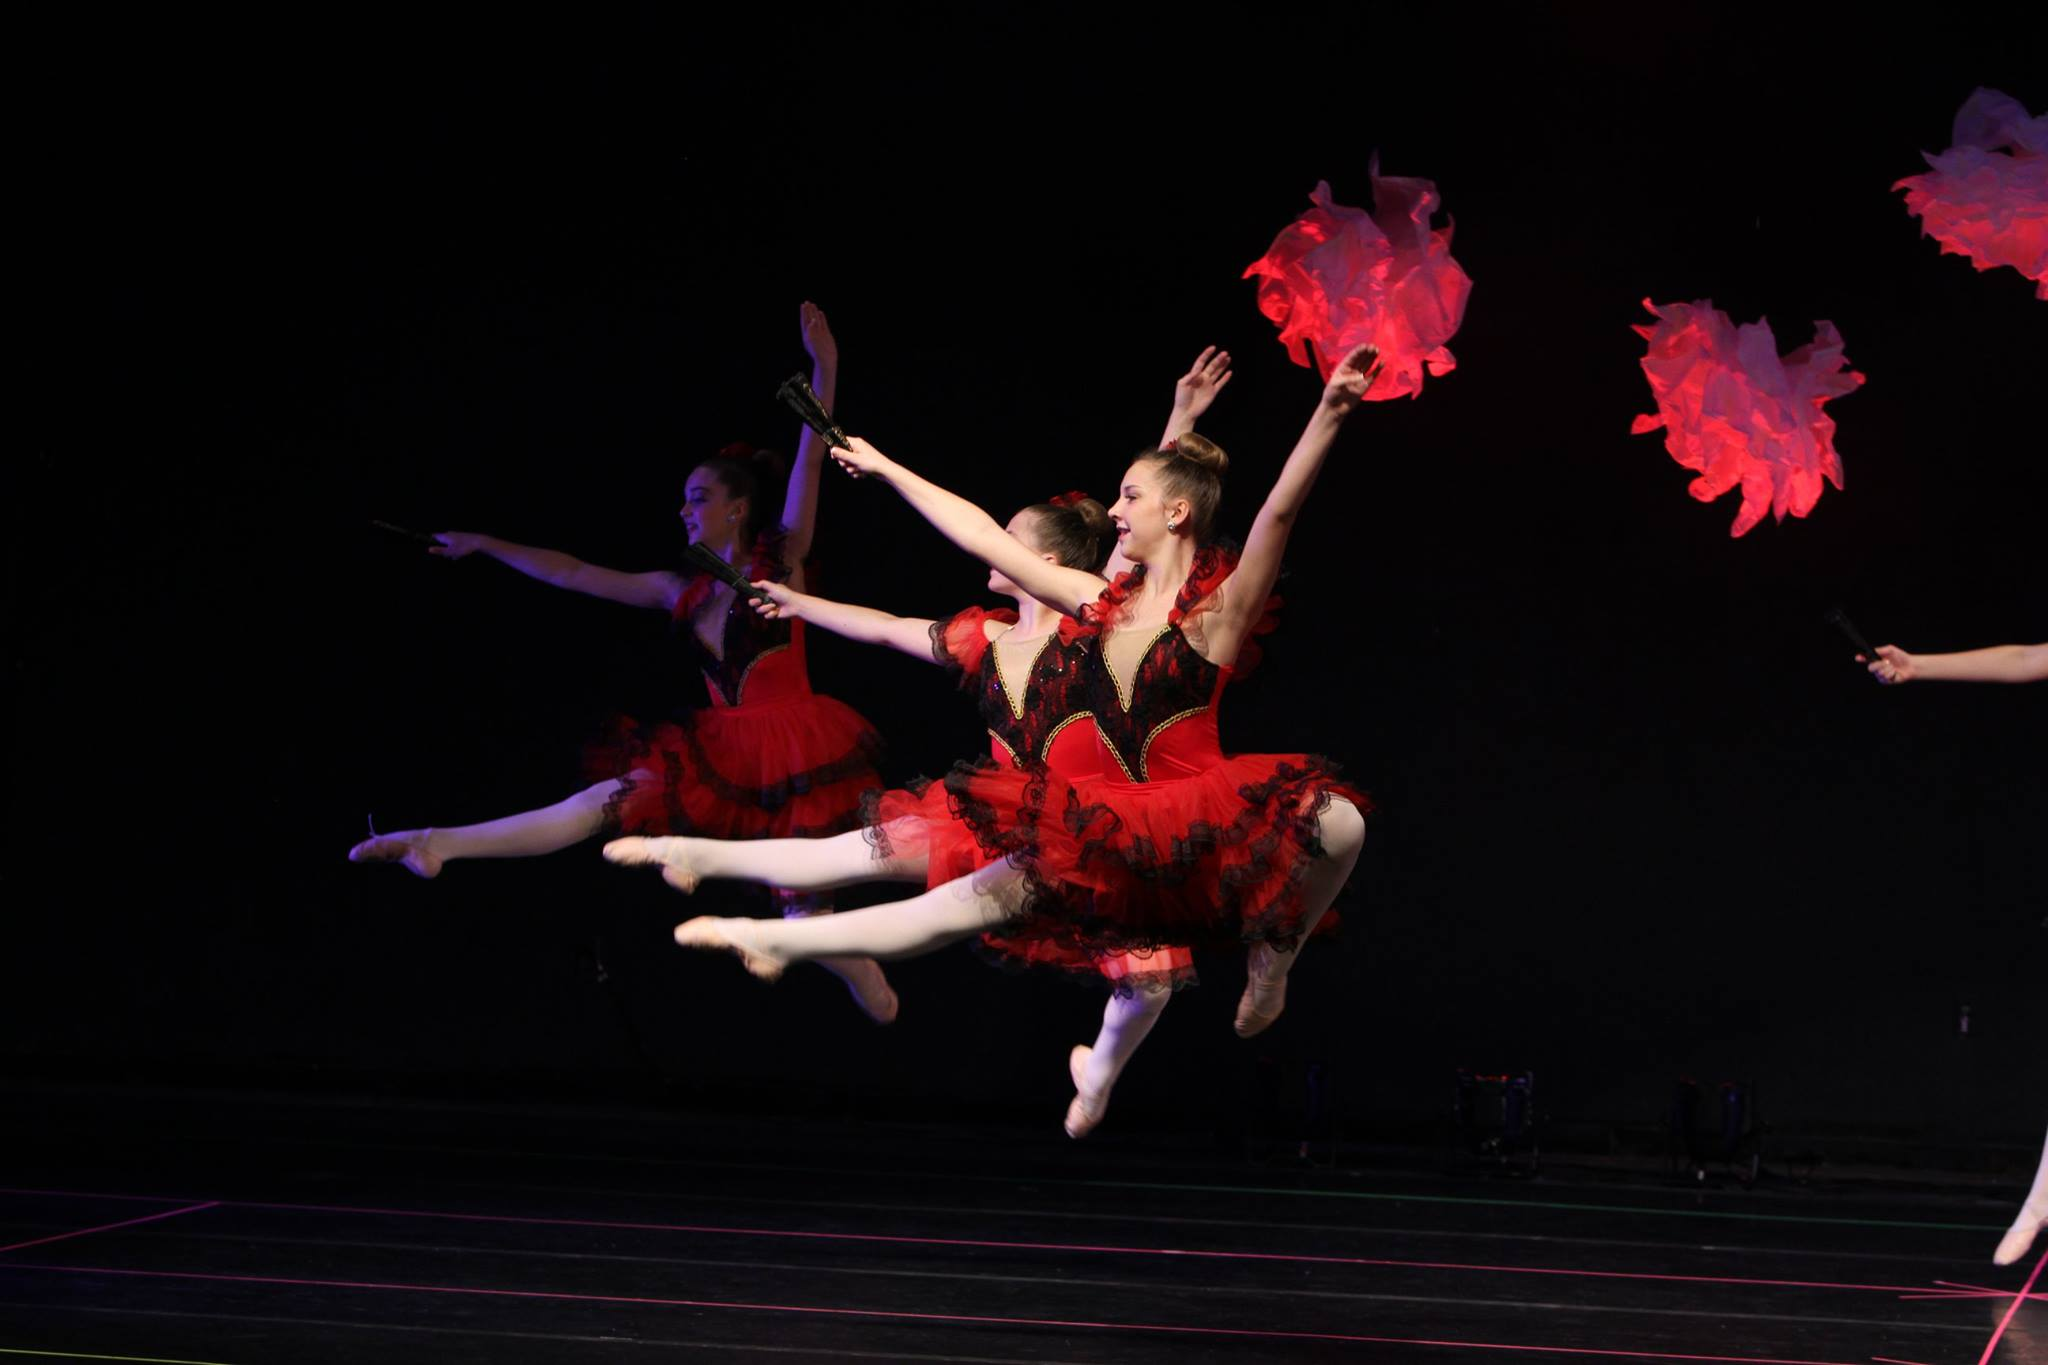 Dancers with Red Pom Poms